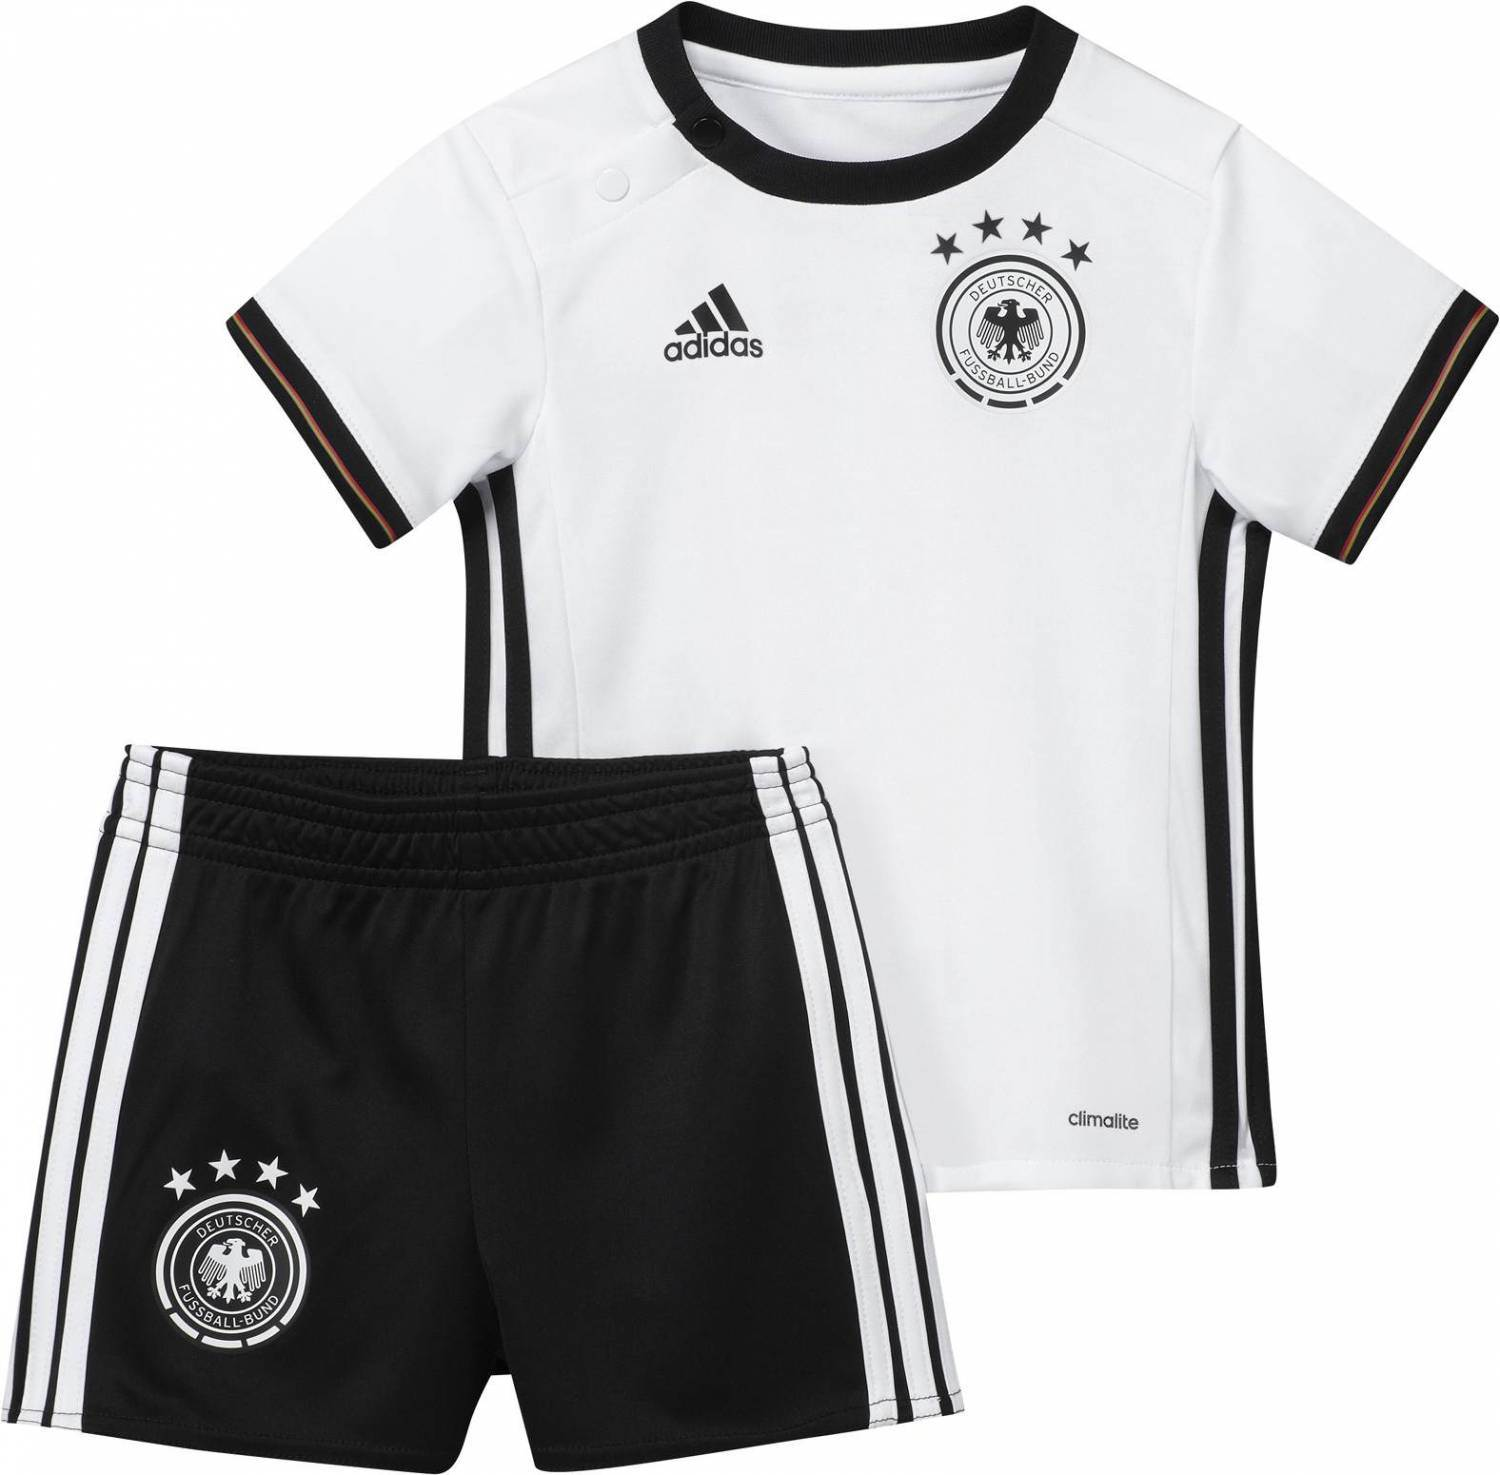 adidas DFB Home Baby Kit Set EM 2016 (Größe 74, white black)